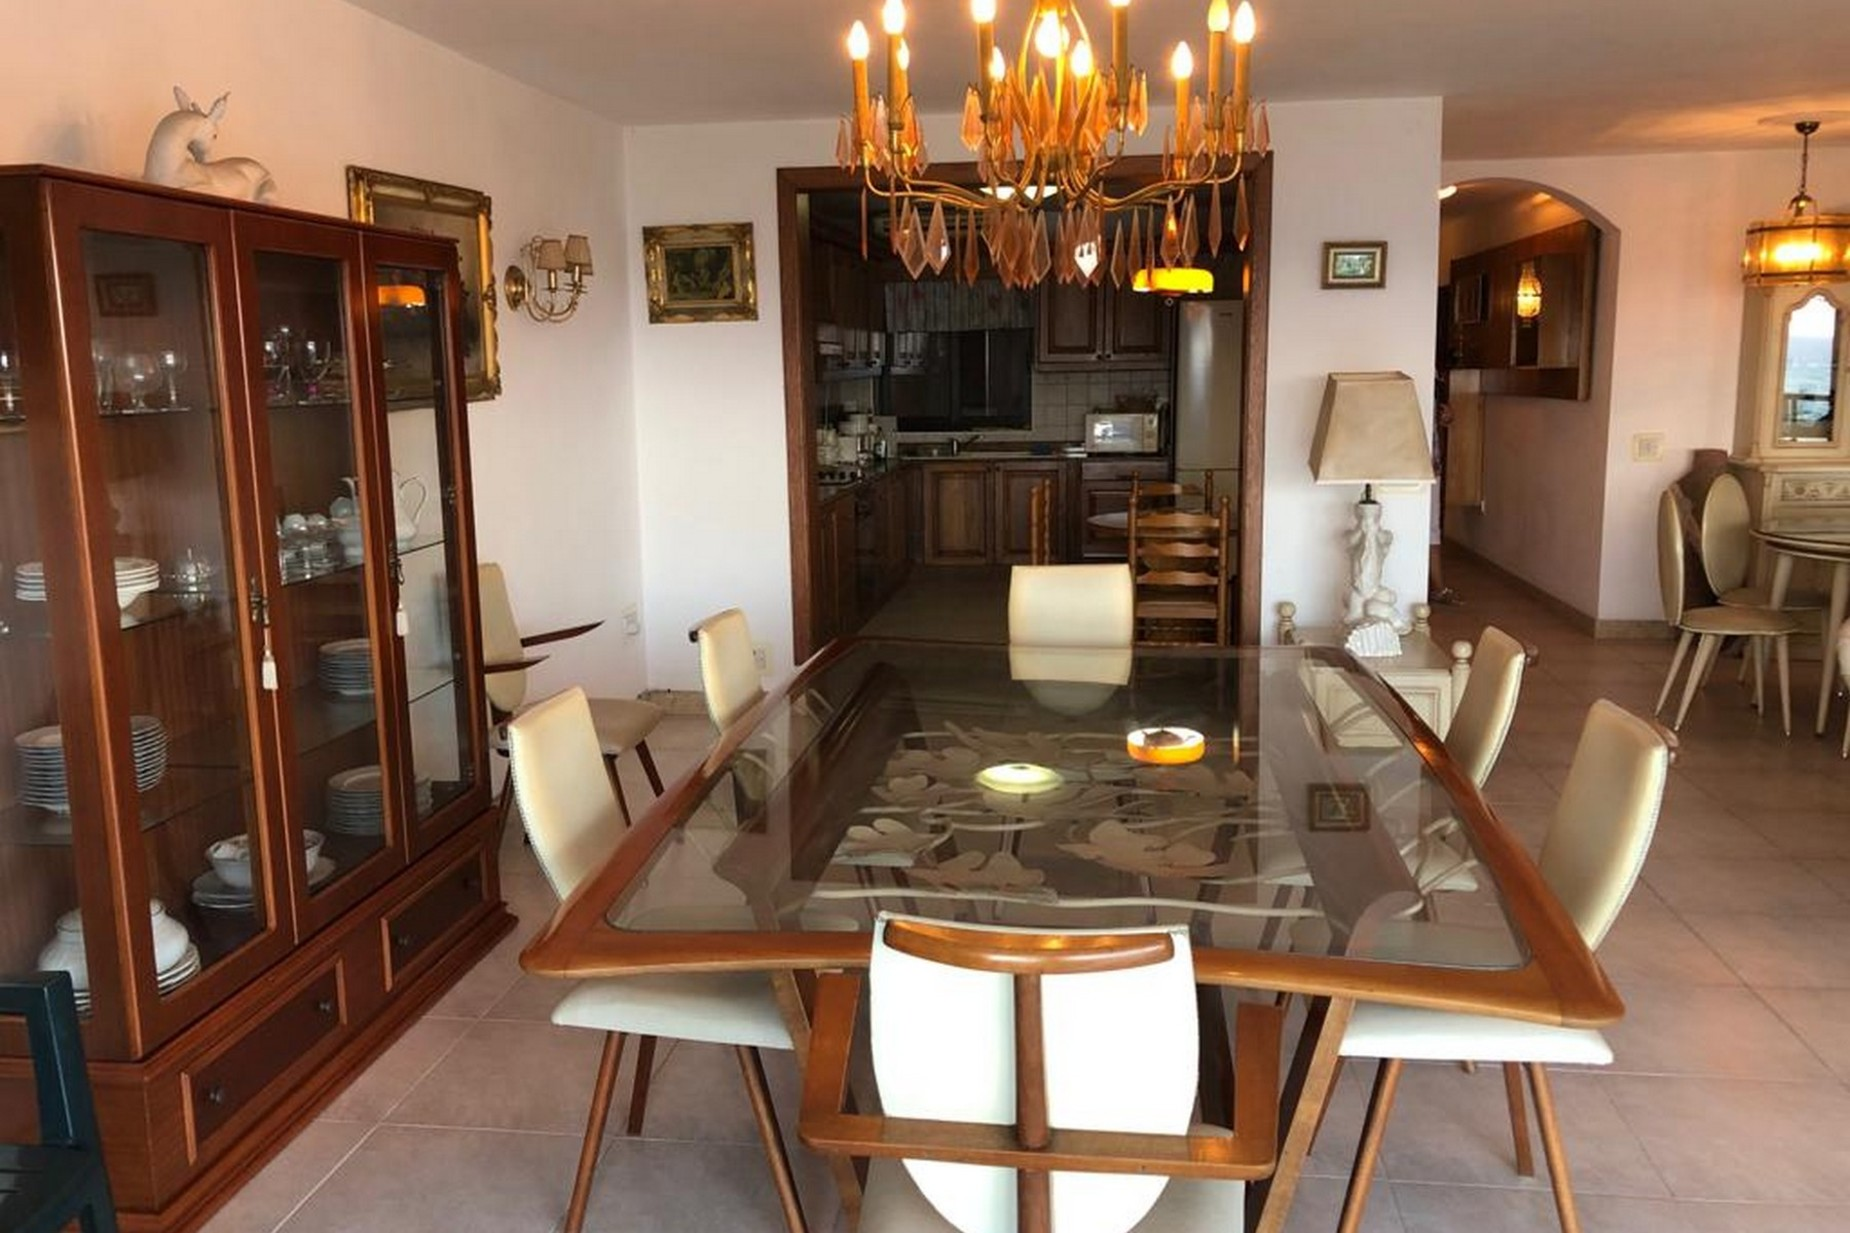 3 bed Apartment For Sale in Sliema, Sliema - thumb 4